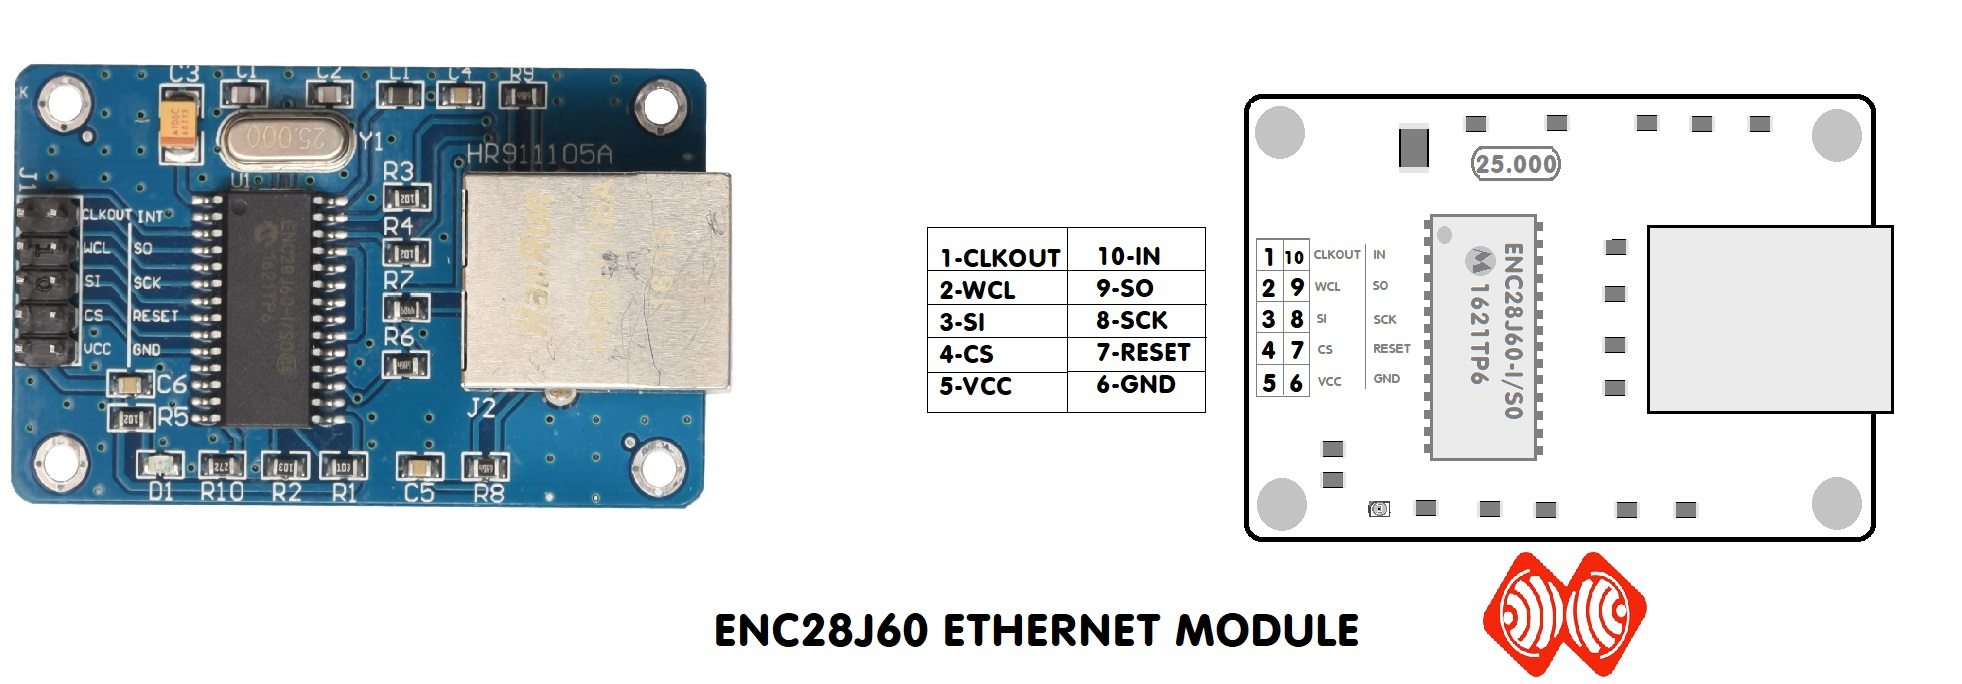 ESPrtk 5$ for RTK positioning solution with M8P ublox or NS